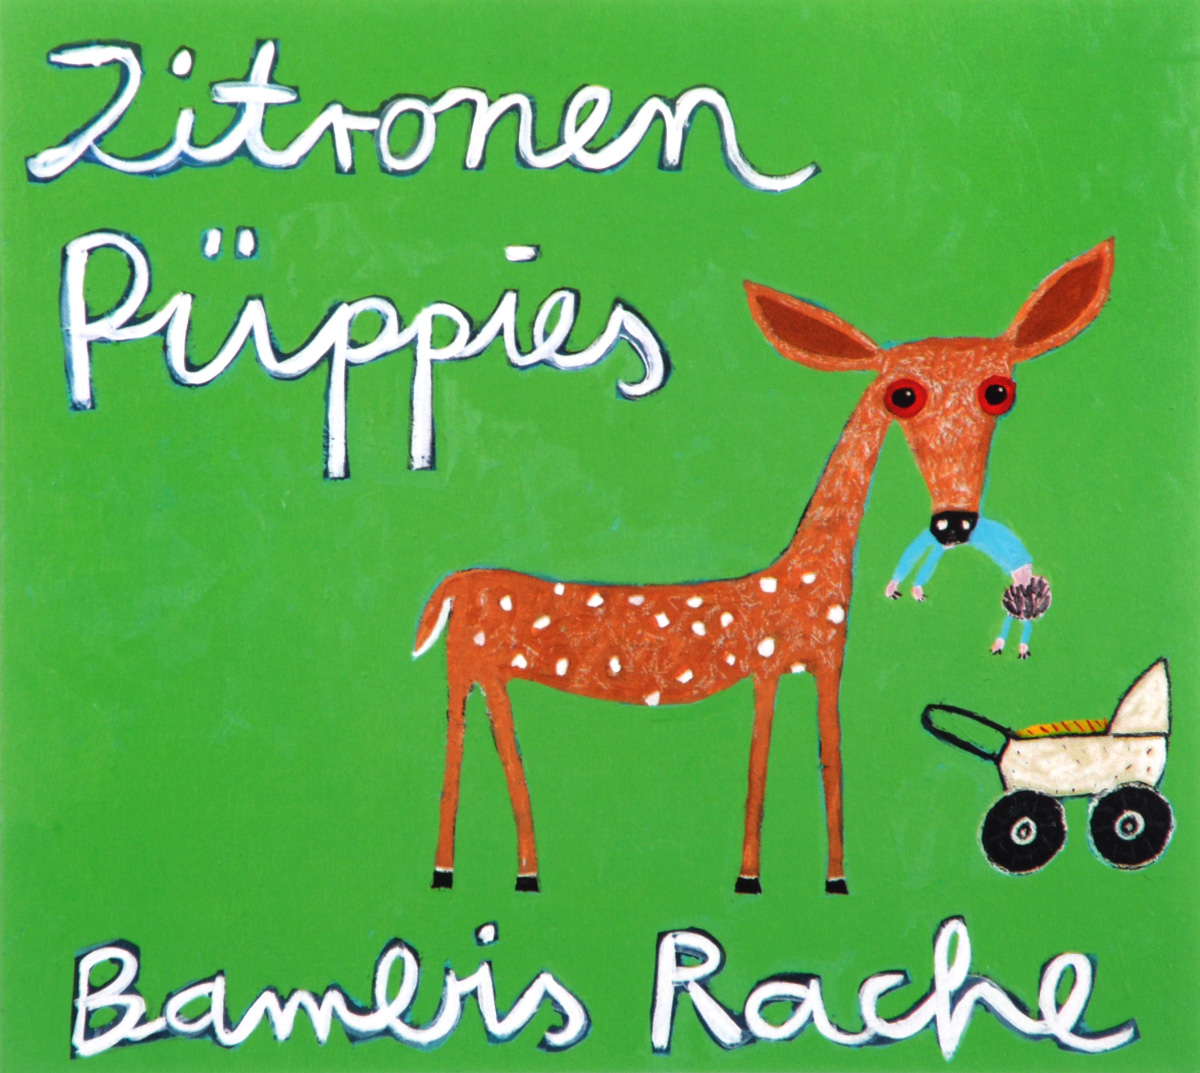 Zitronen Puppies Zitronen Puppies. Bambis Rache